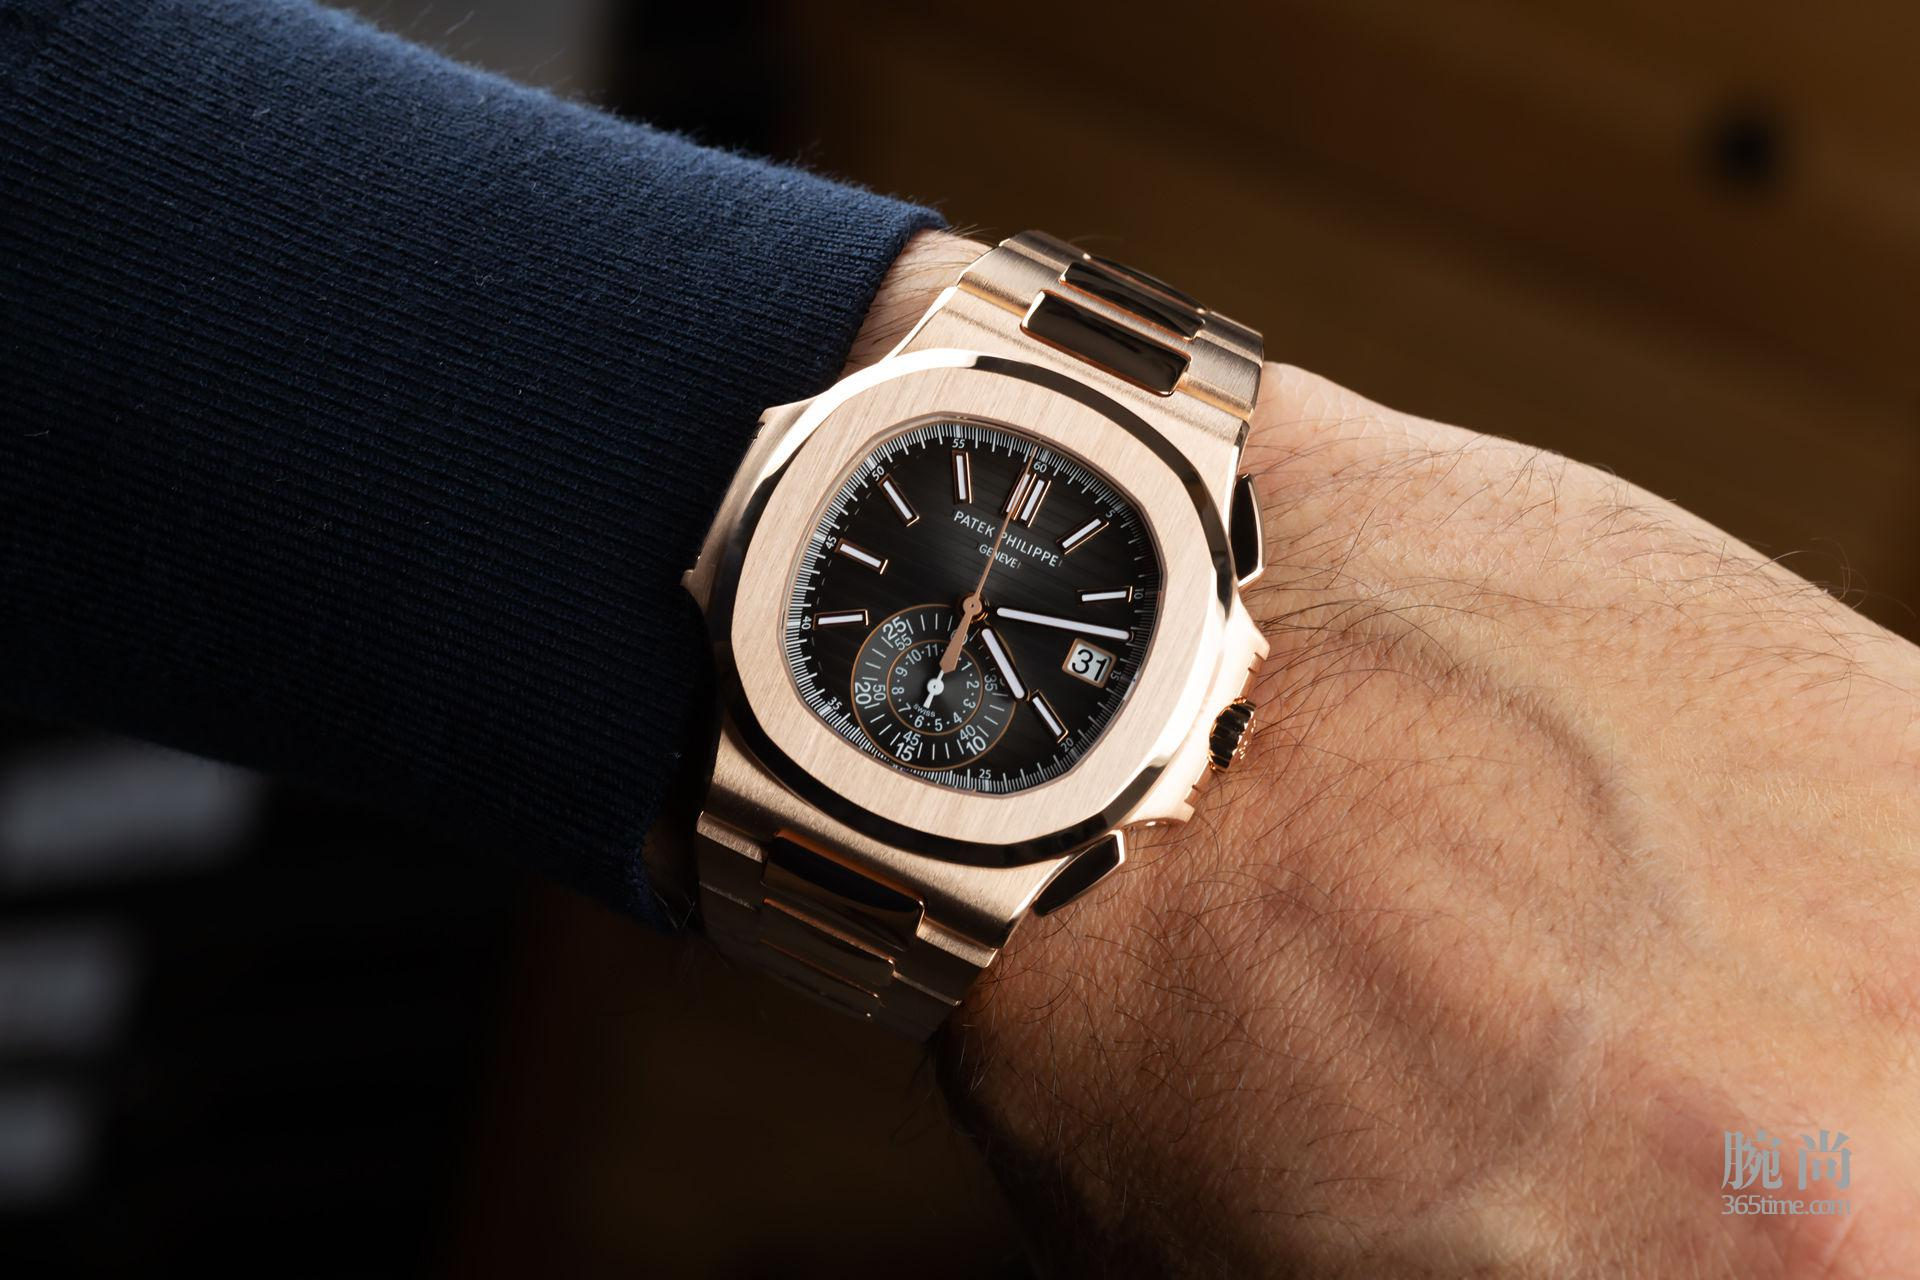 watch-club-patek-philippe-nautilus-chronograph-rose-gold-full-set-ref-5980-1r-001-year-2014-6.jpg